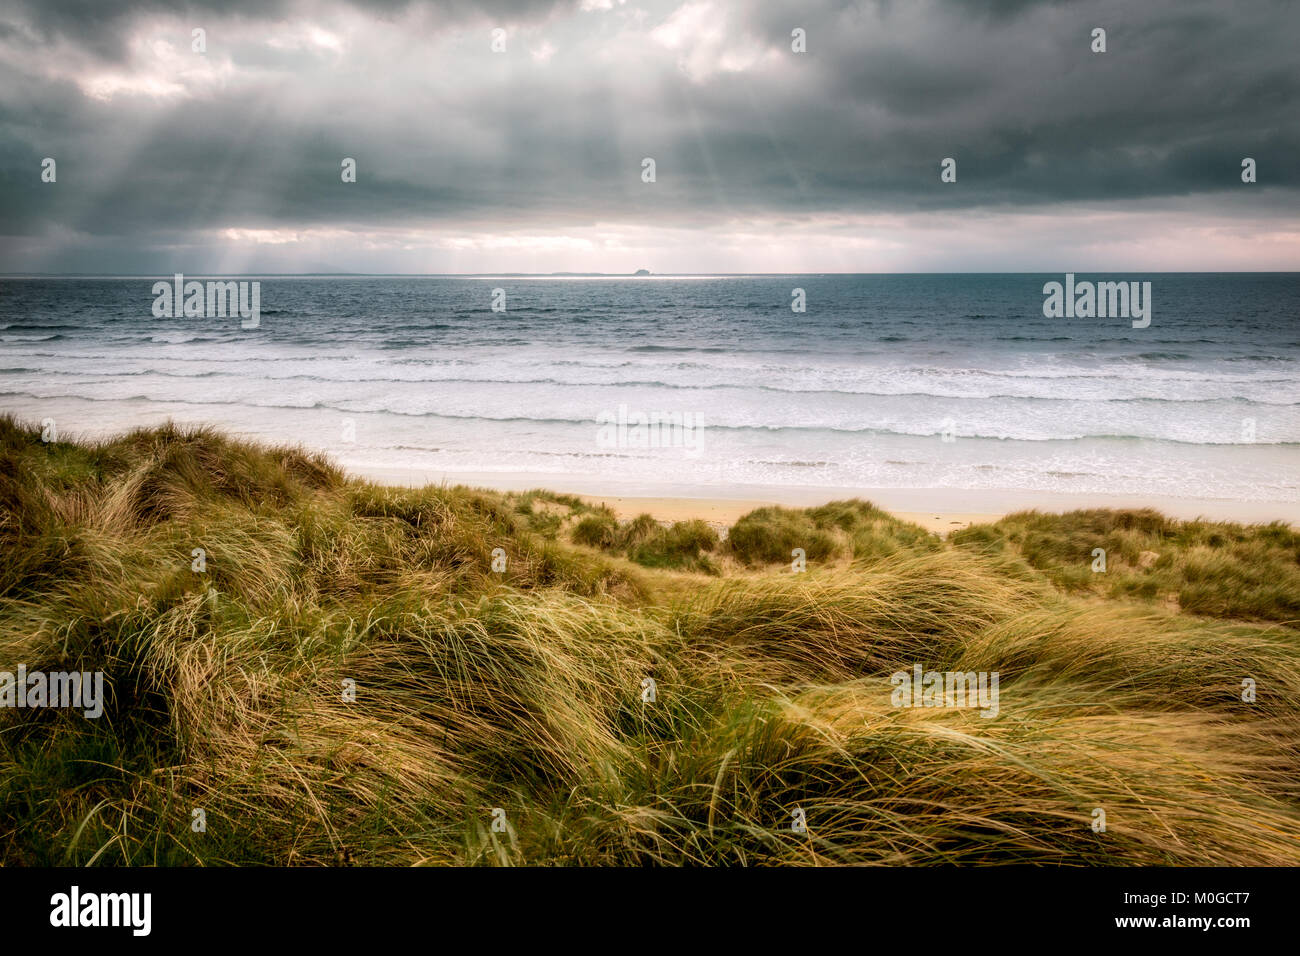 Windy weather on top of a sand dune looking out to a choppy coast on a sandy beach Stock Photo